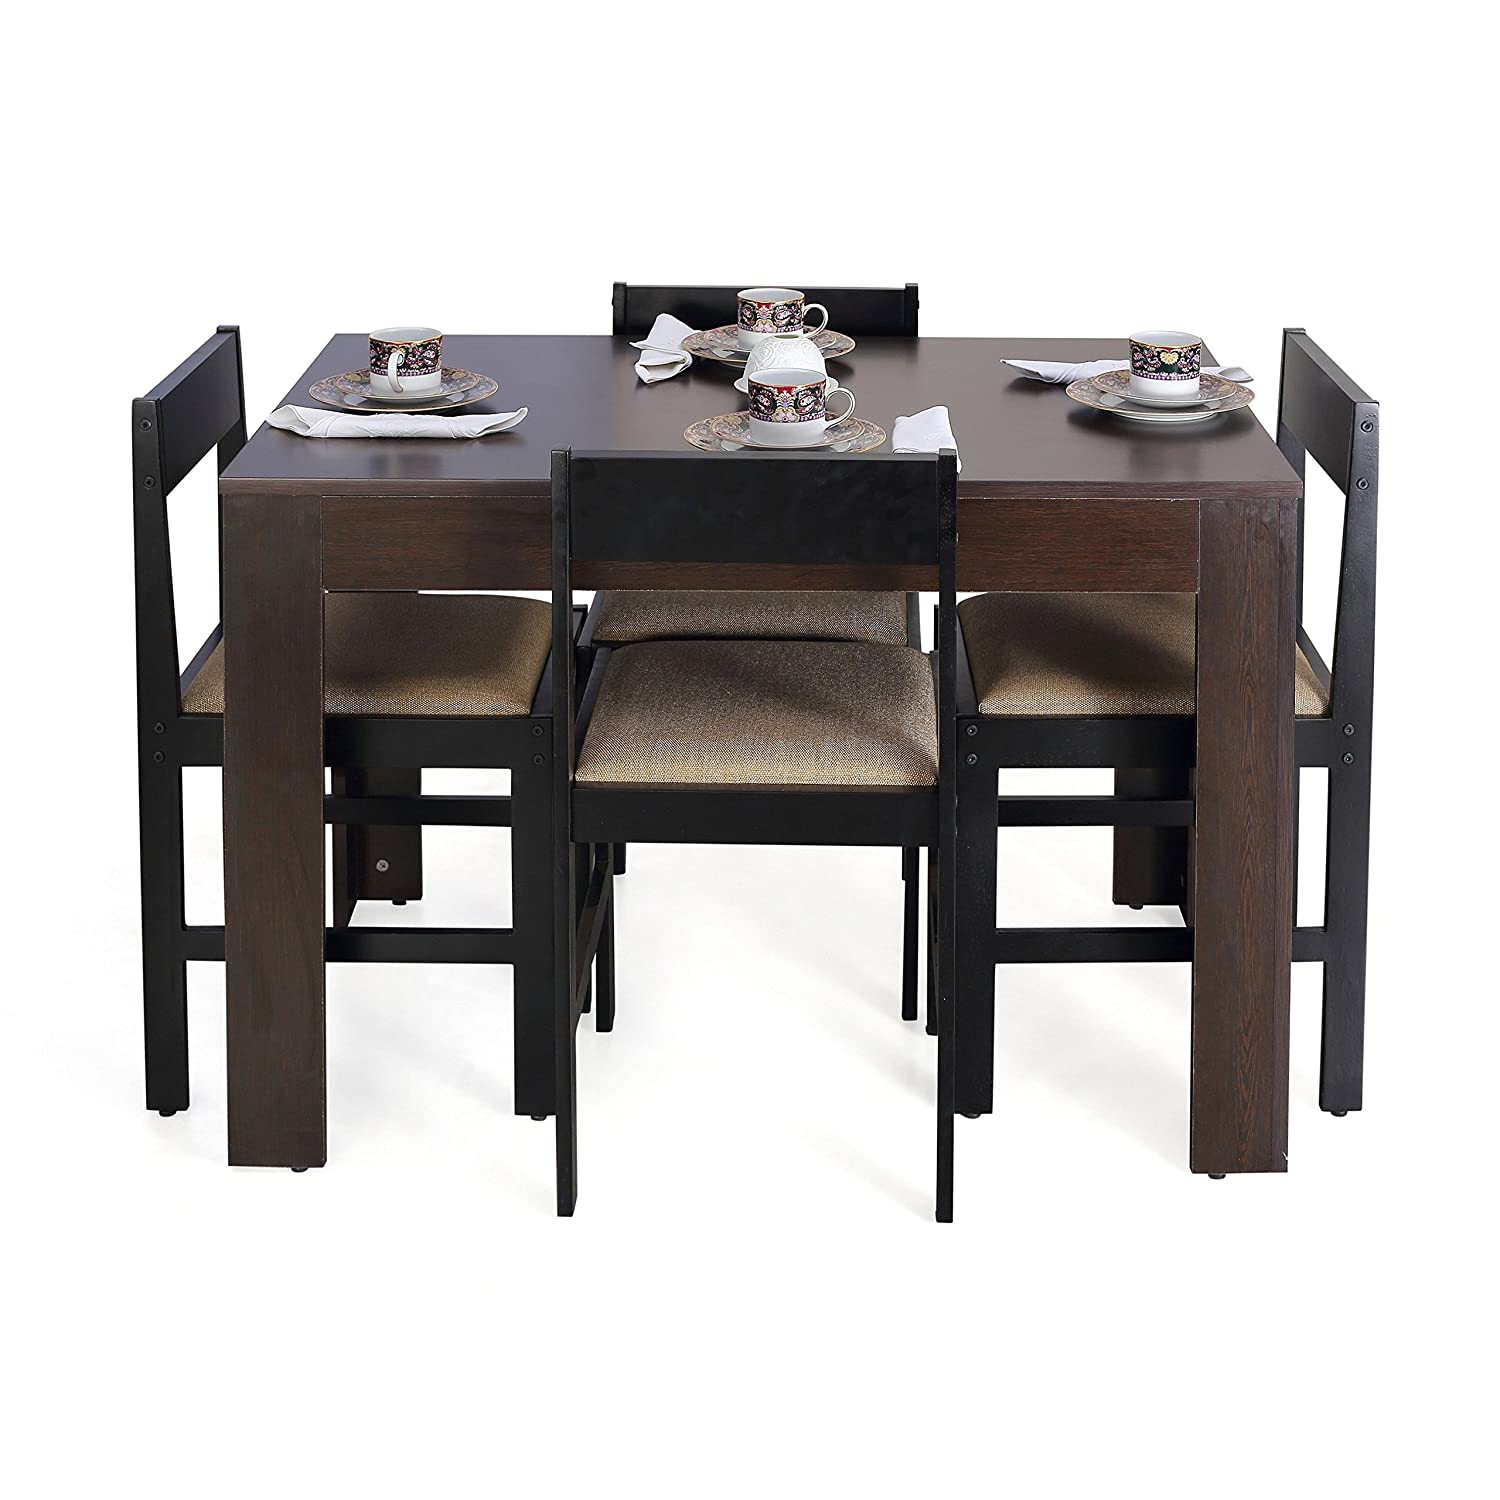 Dining Table Set 4 Seater Part - 35: Forzza Peter Four Seater Rectangular Dining Table Set (Wenge): Amazon.in:  Home U0026 Kitchen